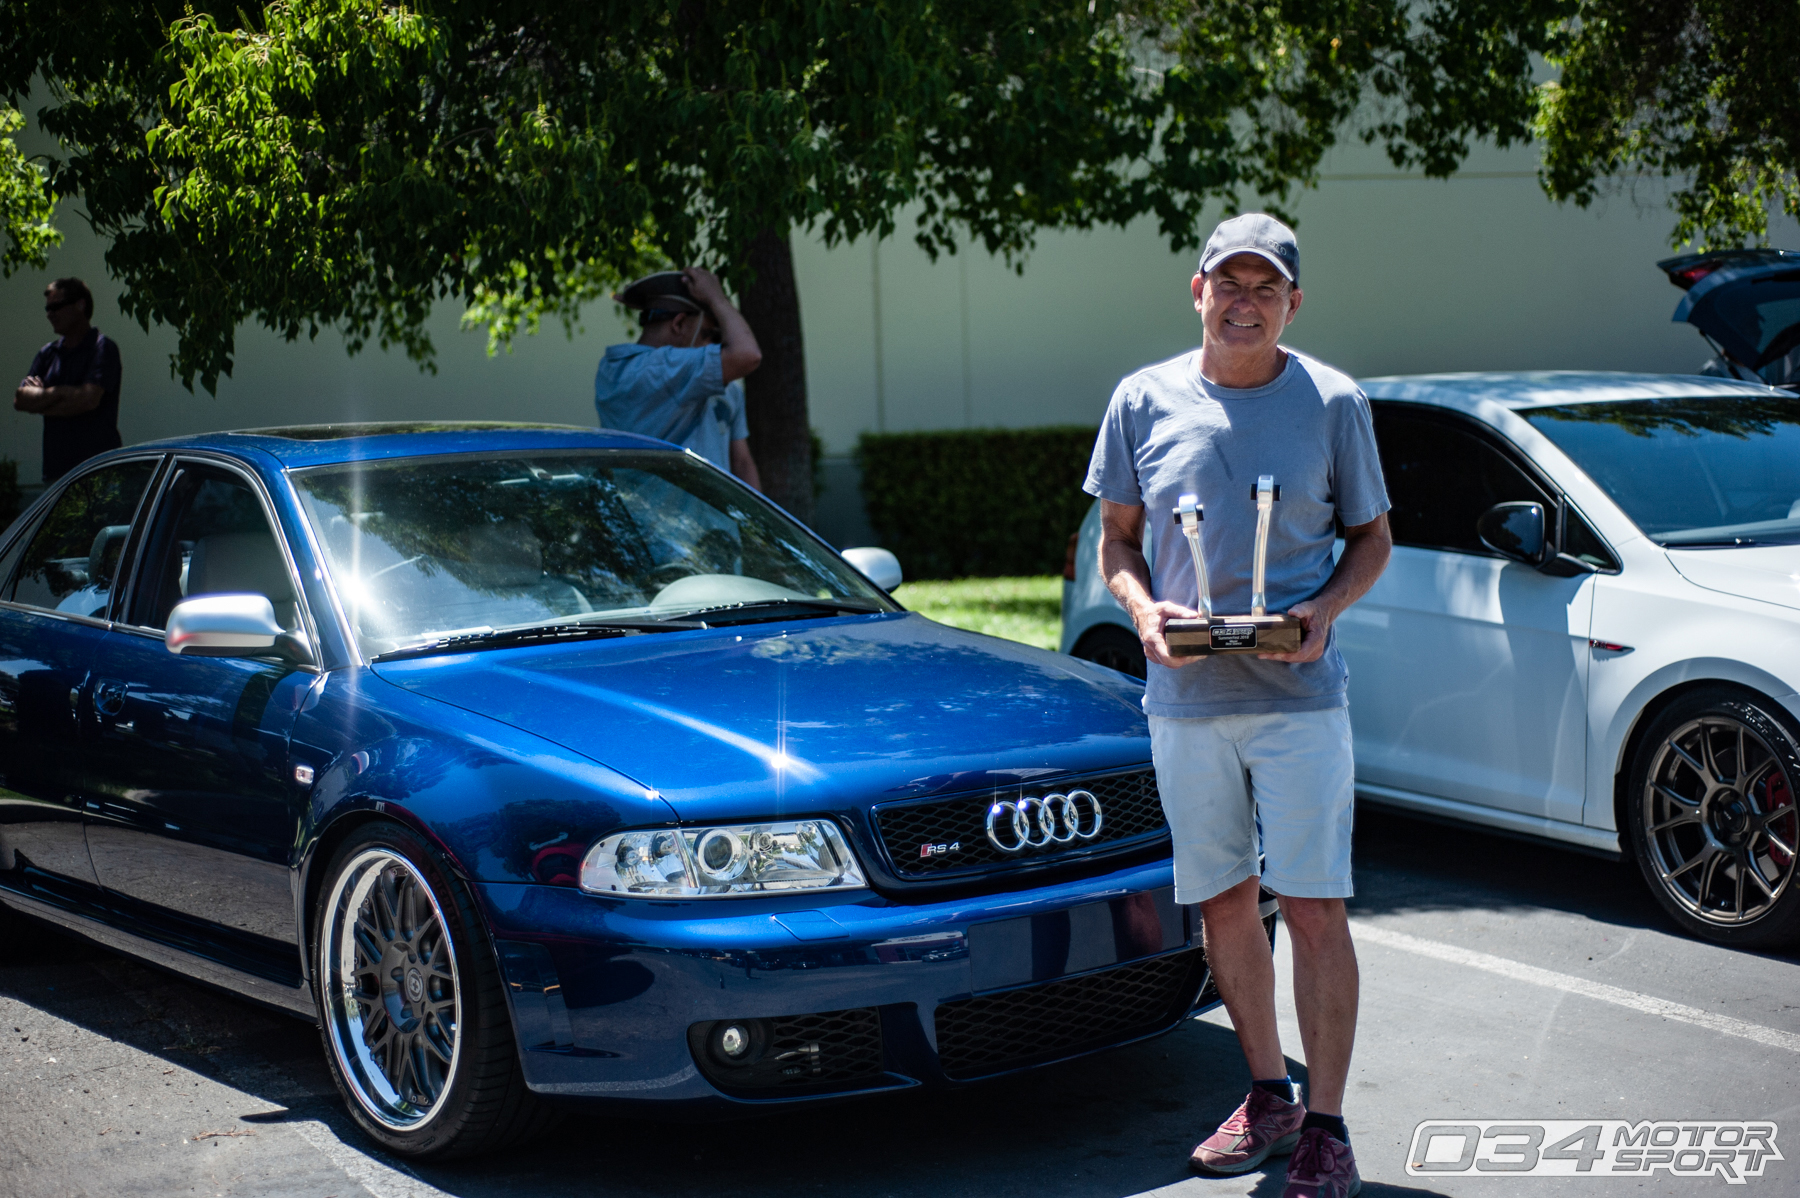 Jim Loucks B5 Audi S4 2.7T Widebody Sedan